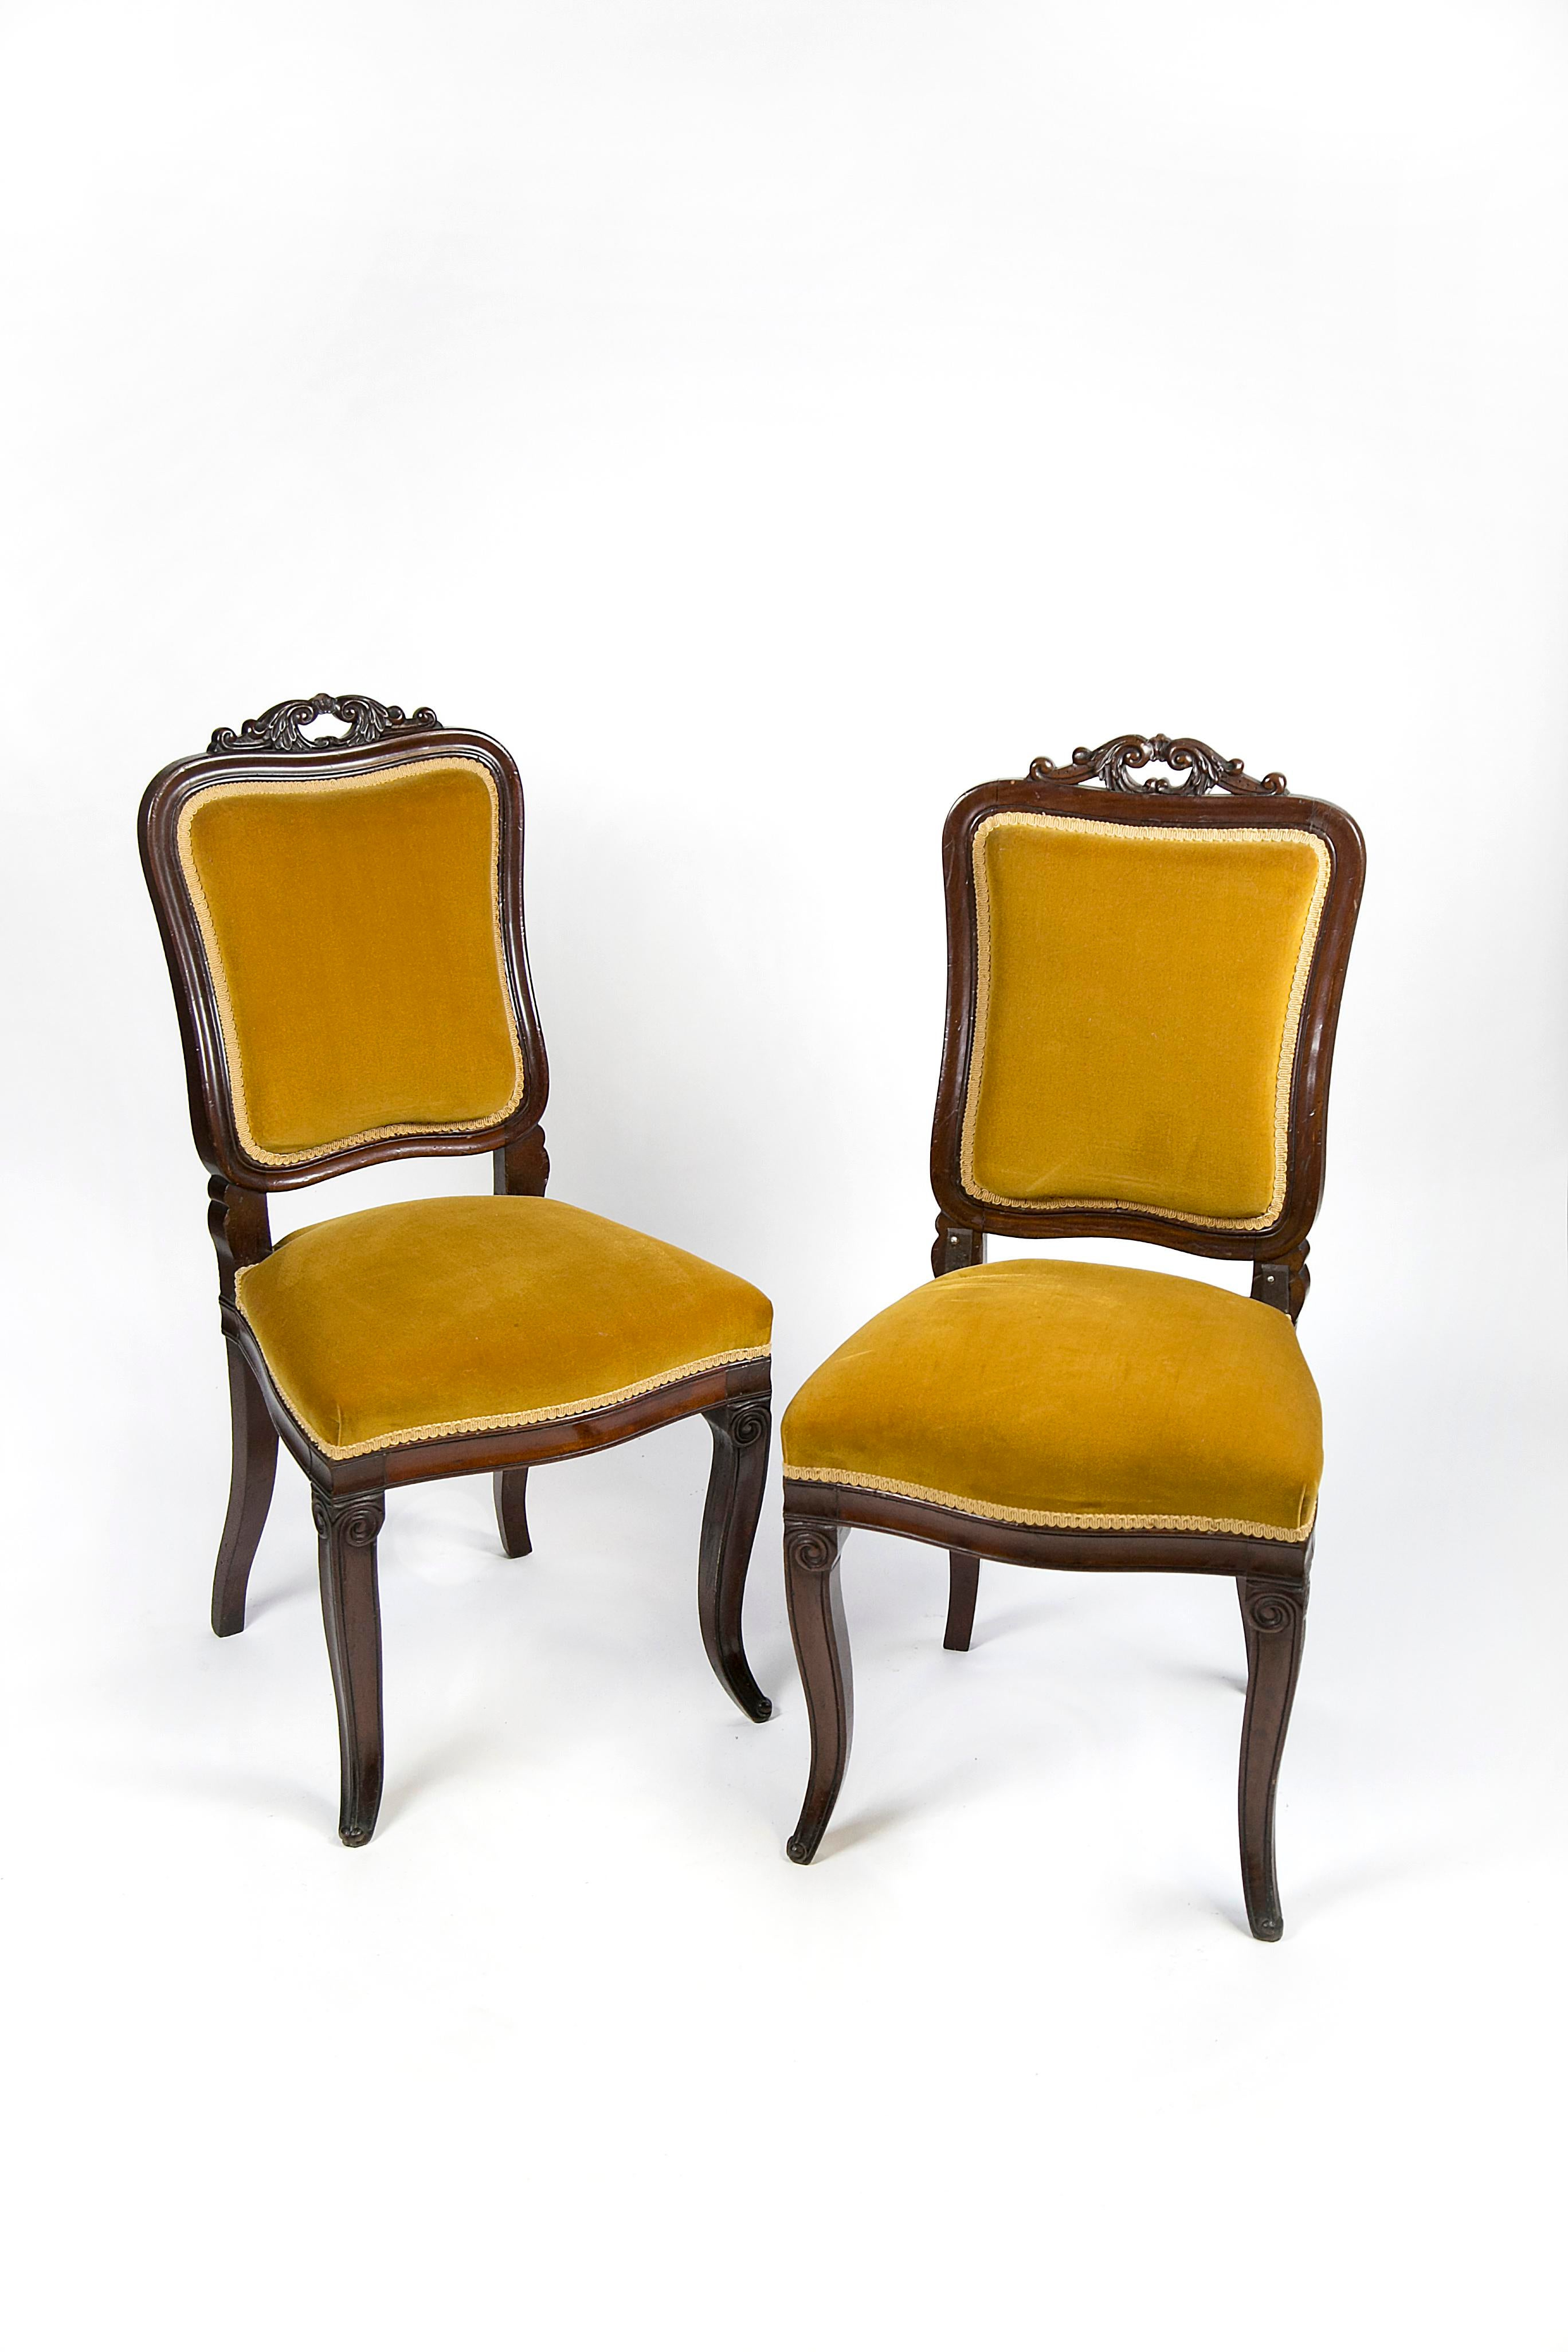 Antique Velvet Victorian Style Accent Chairs   A Pair   Image 12 Of 12